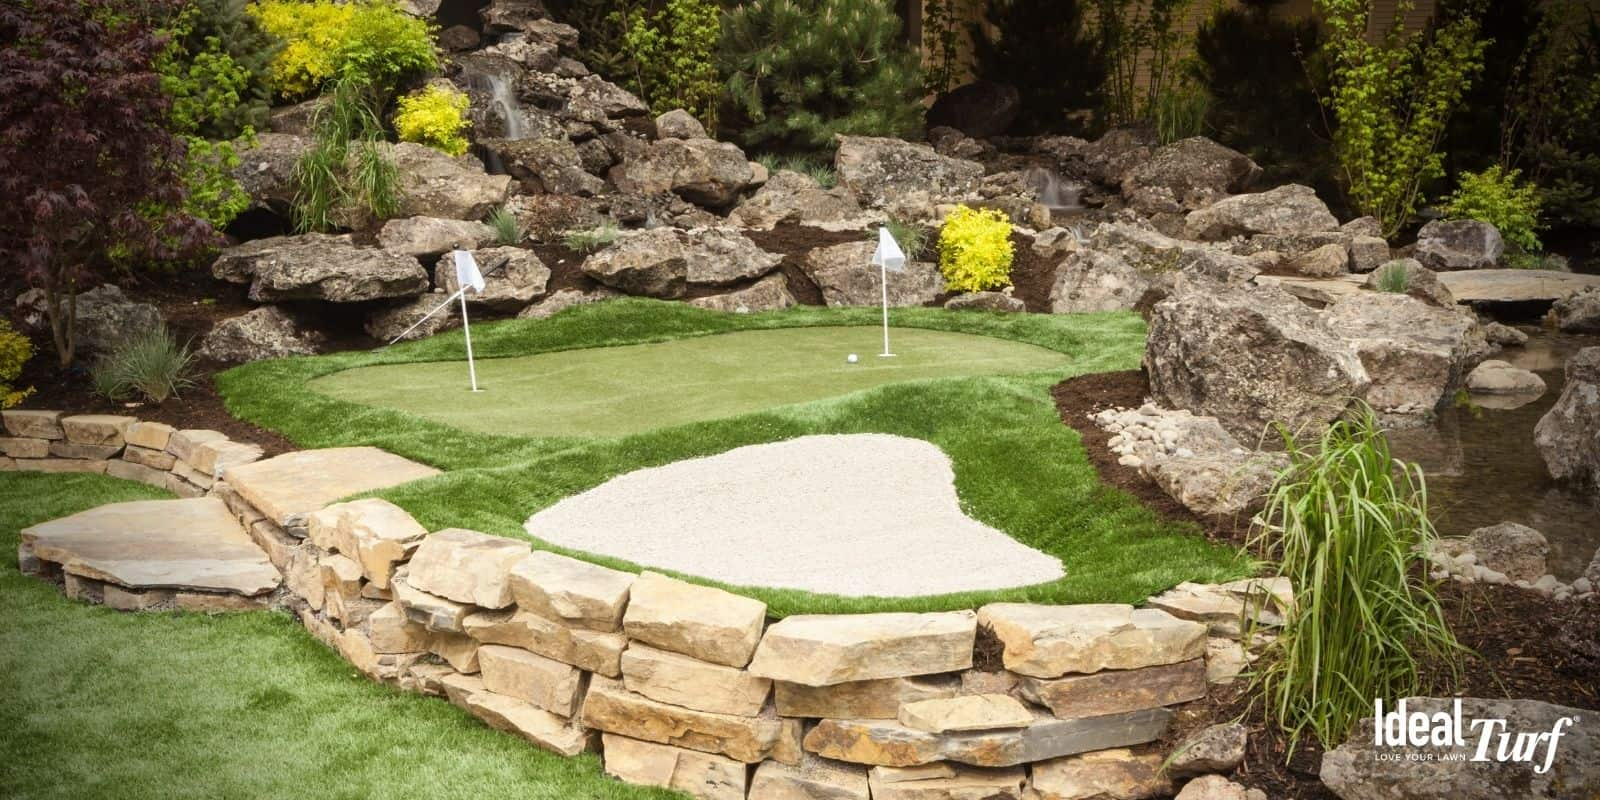 Backyard Putting Green Design with Sand Trap